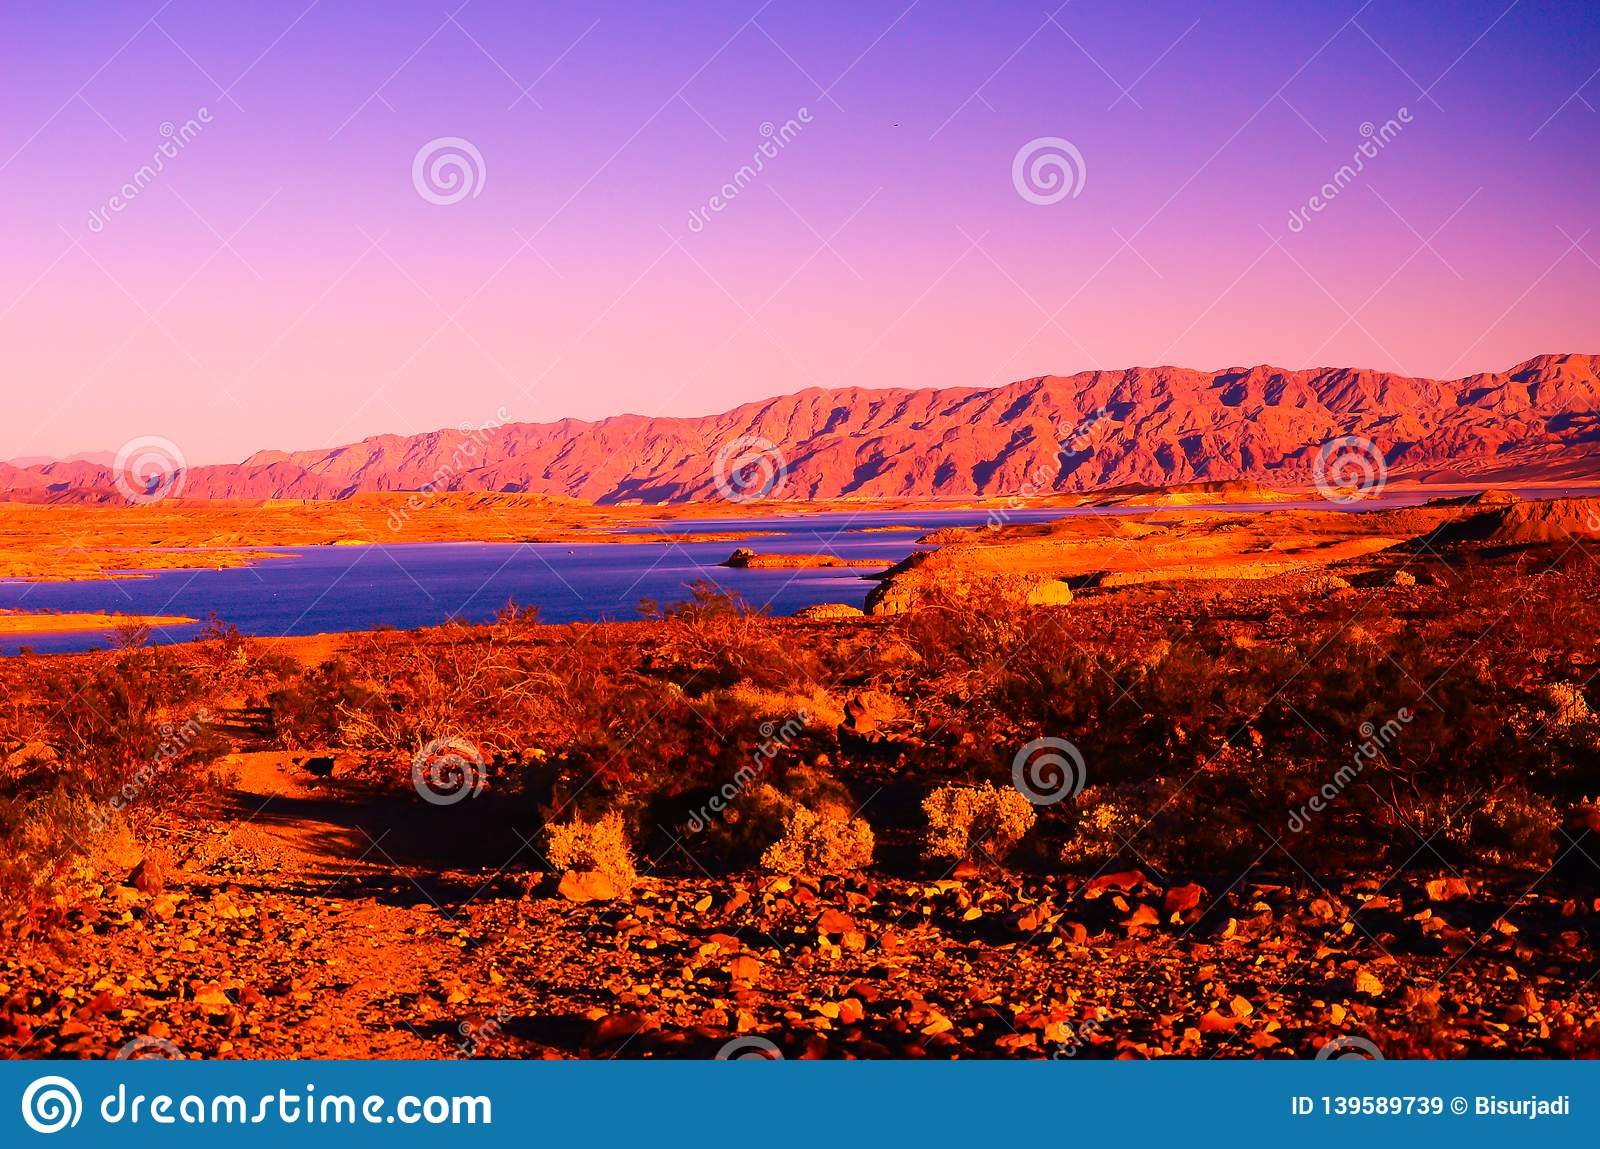 Sandy canyon hill in the desert